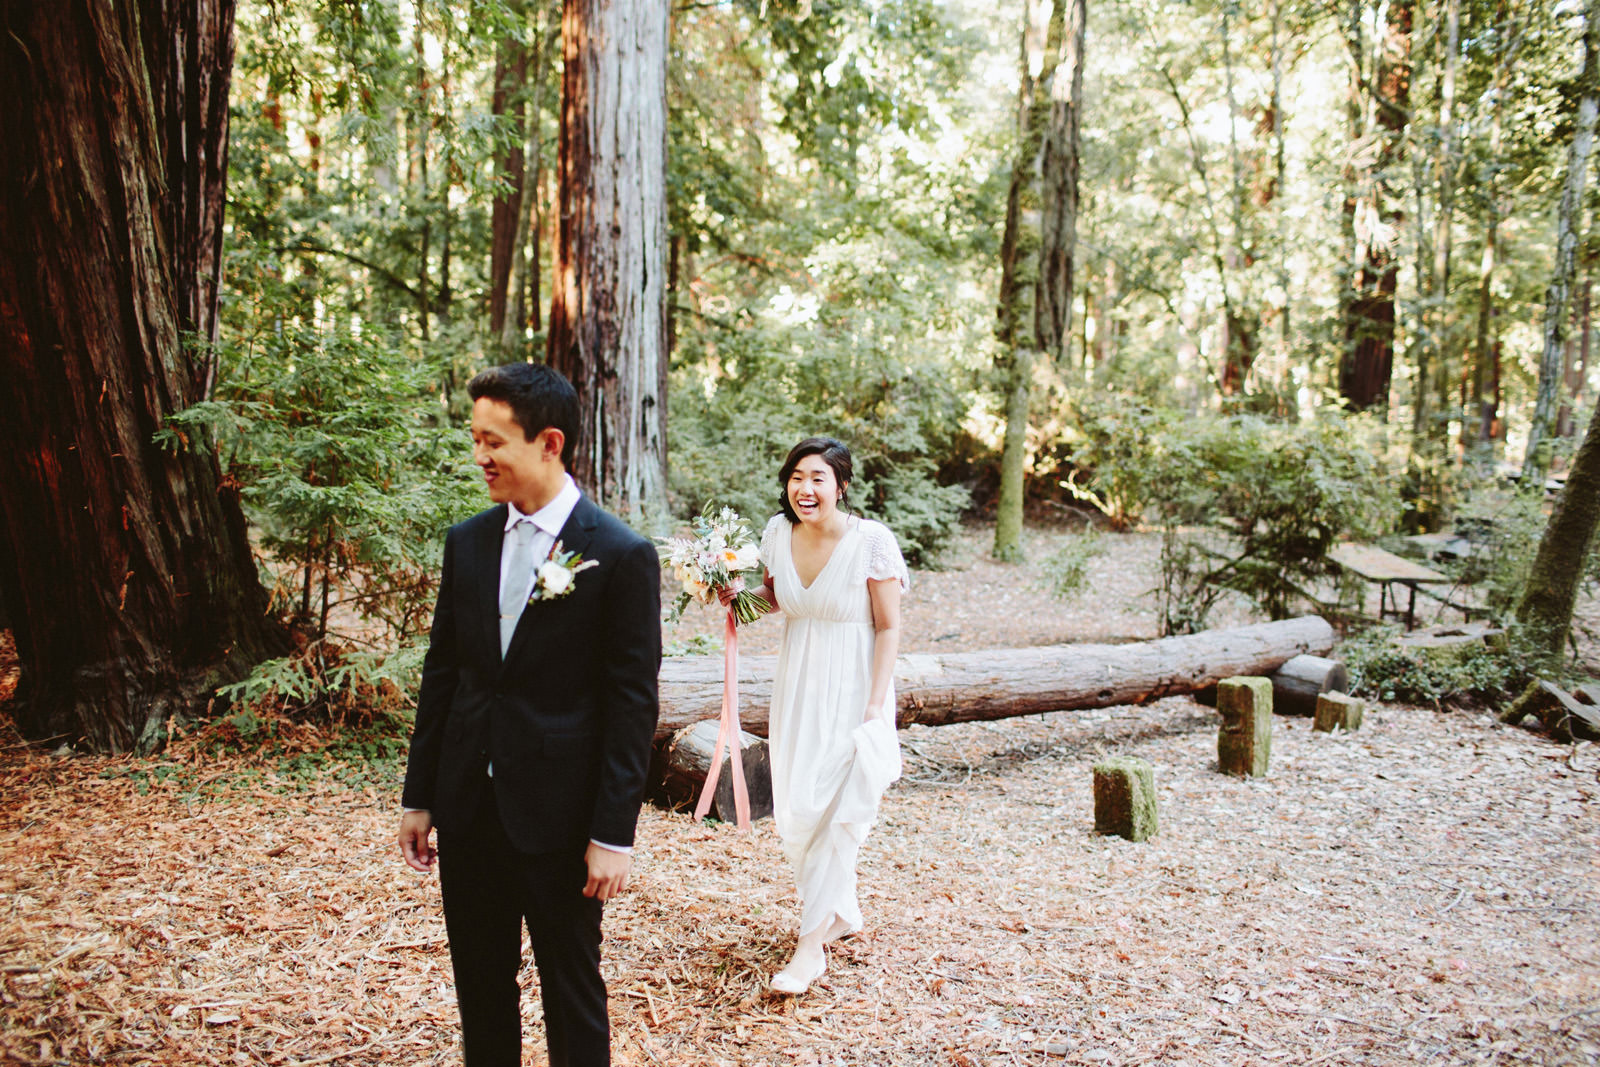 kimclay-blog-004 REDWOOD FOREST WEDDING